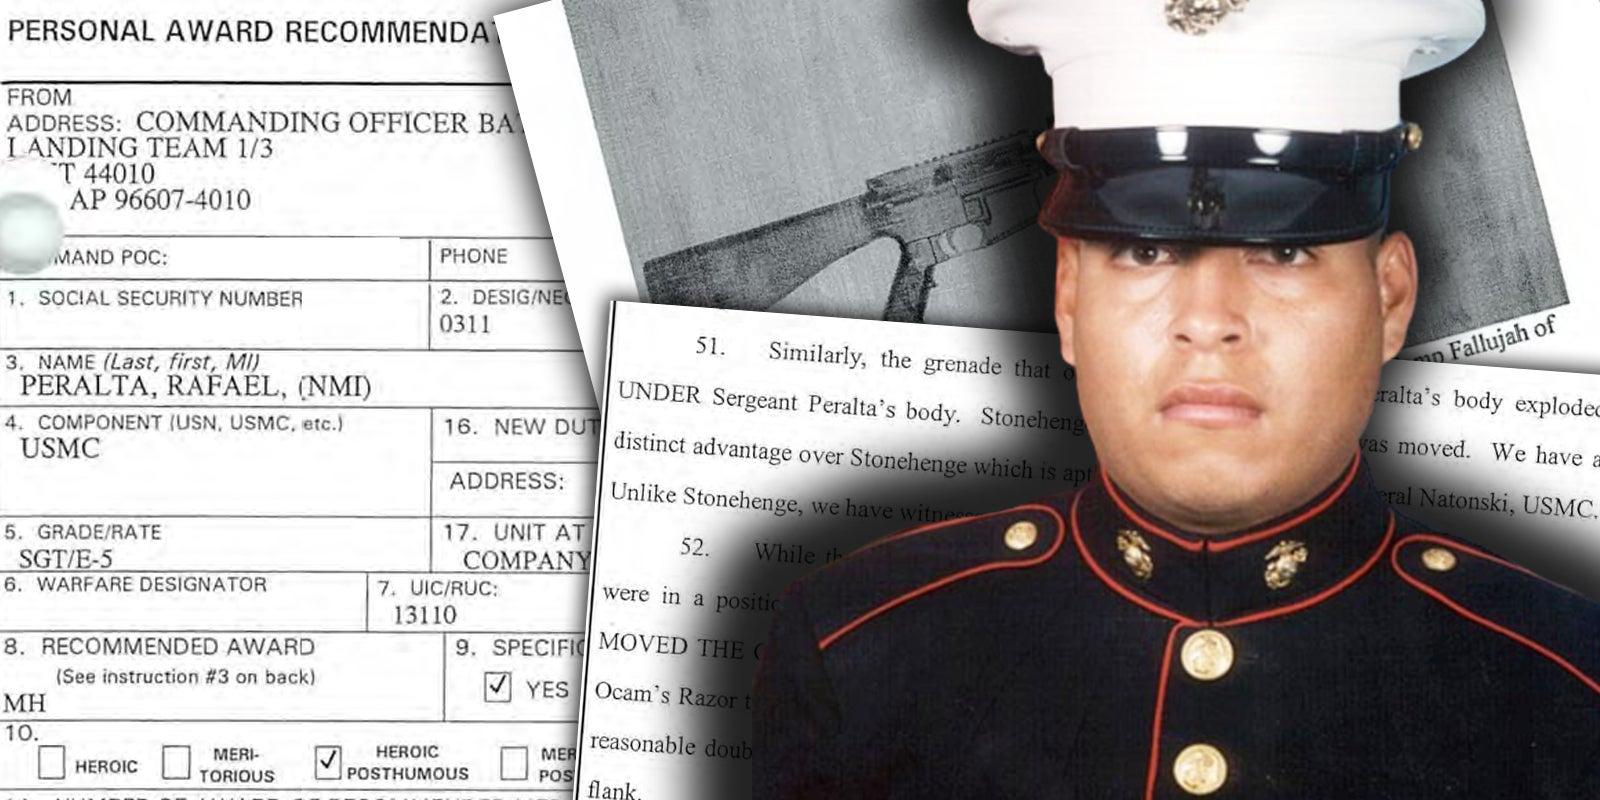 Rafael Peralta's death ensured four fellow Marines would live. His Medal of Honor award recommendation explains how